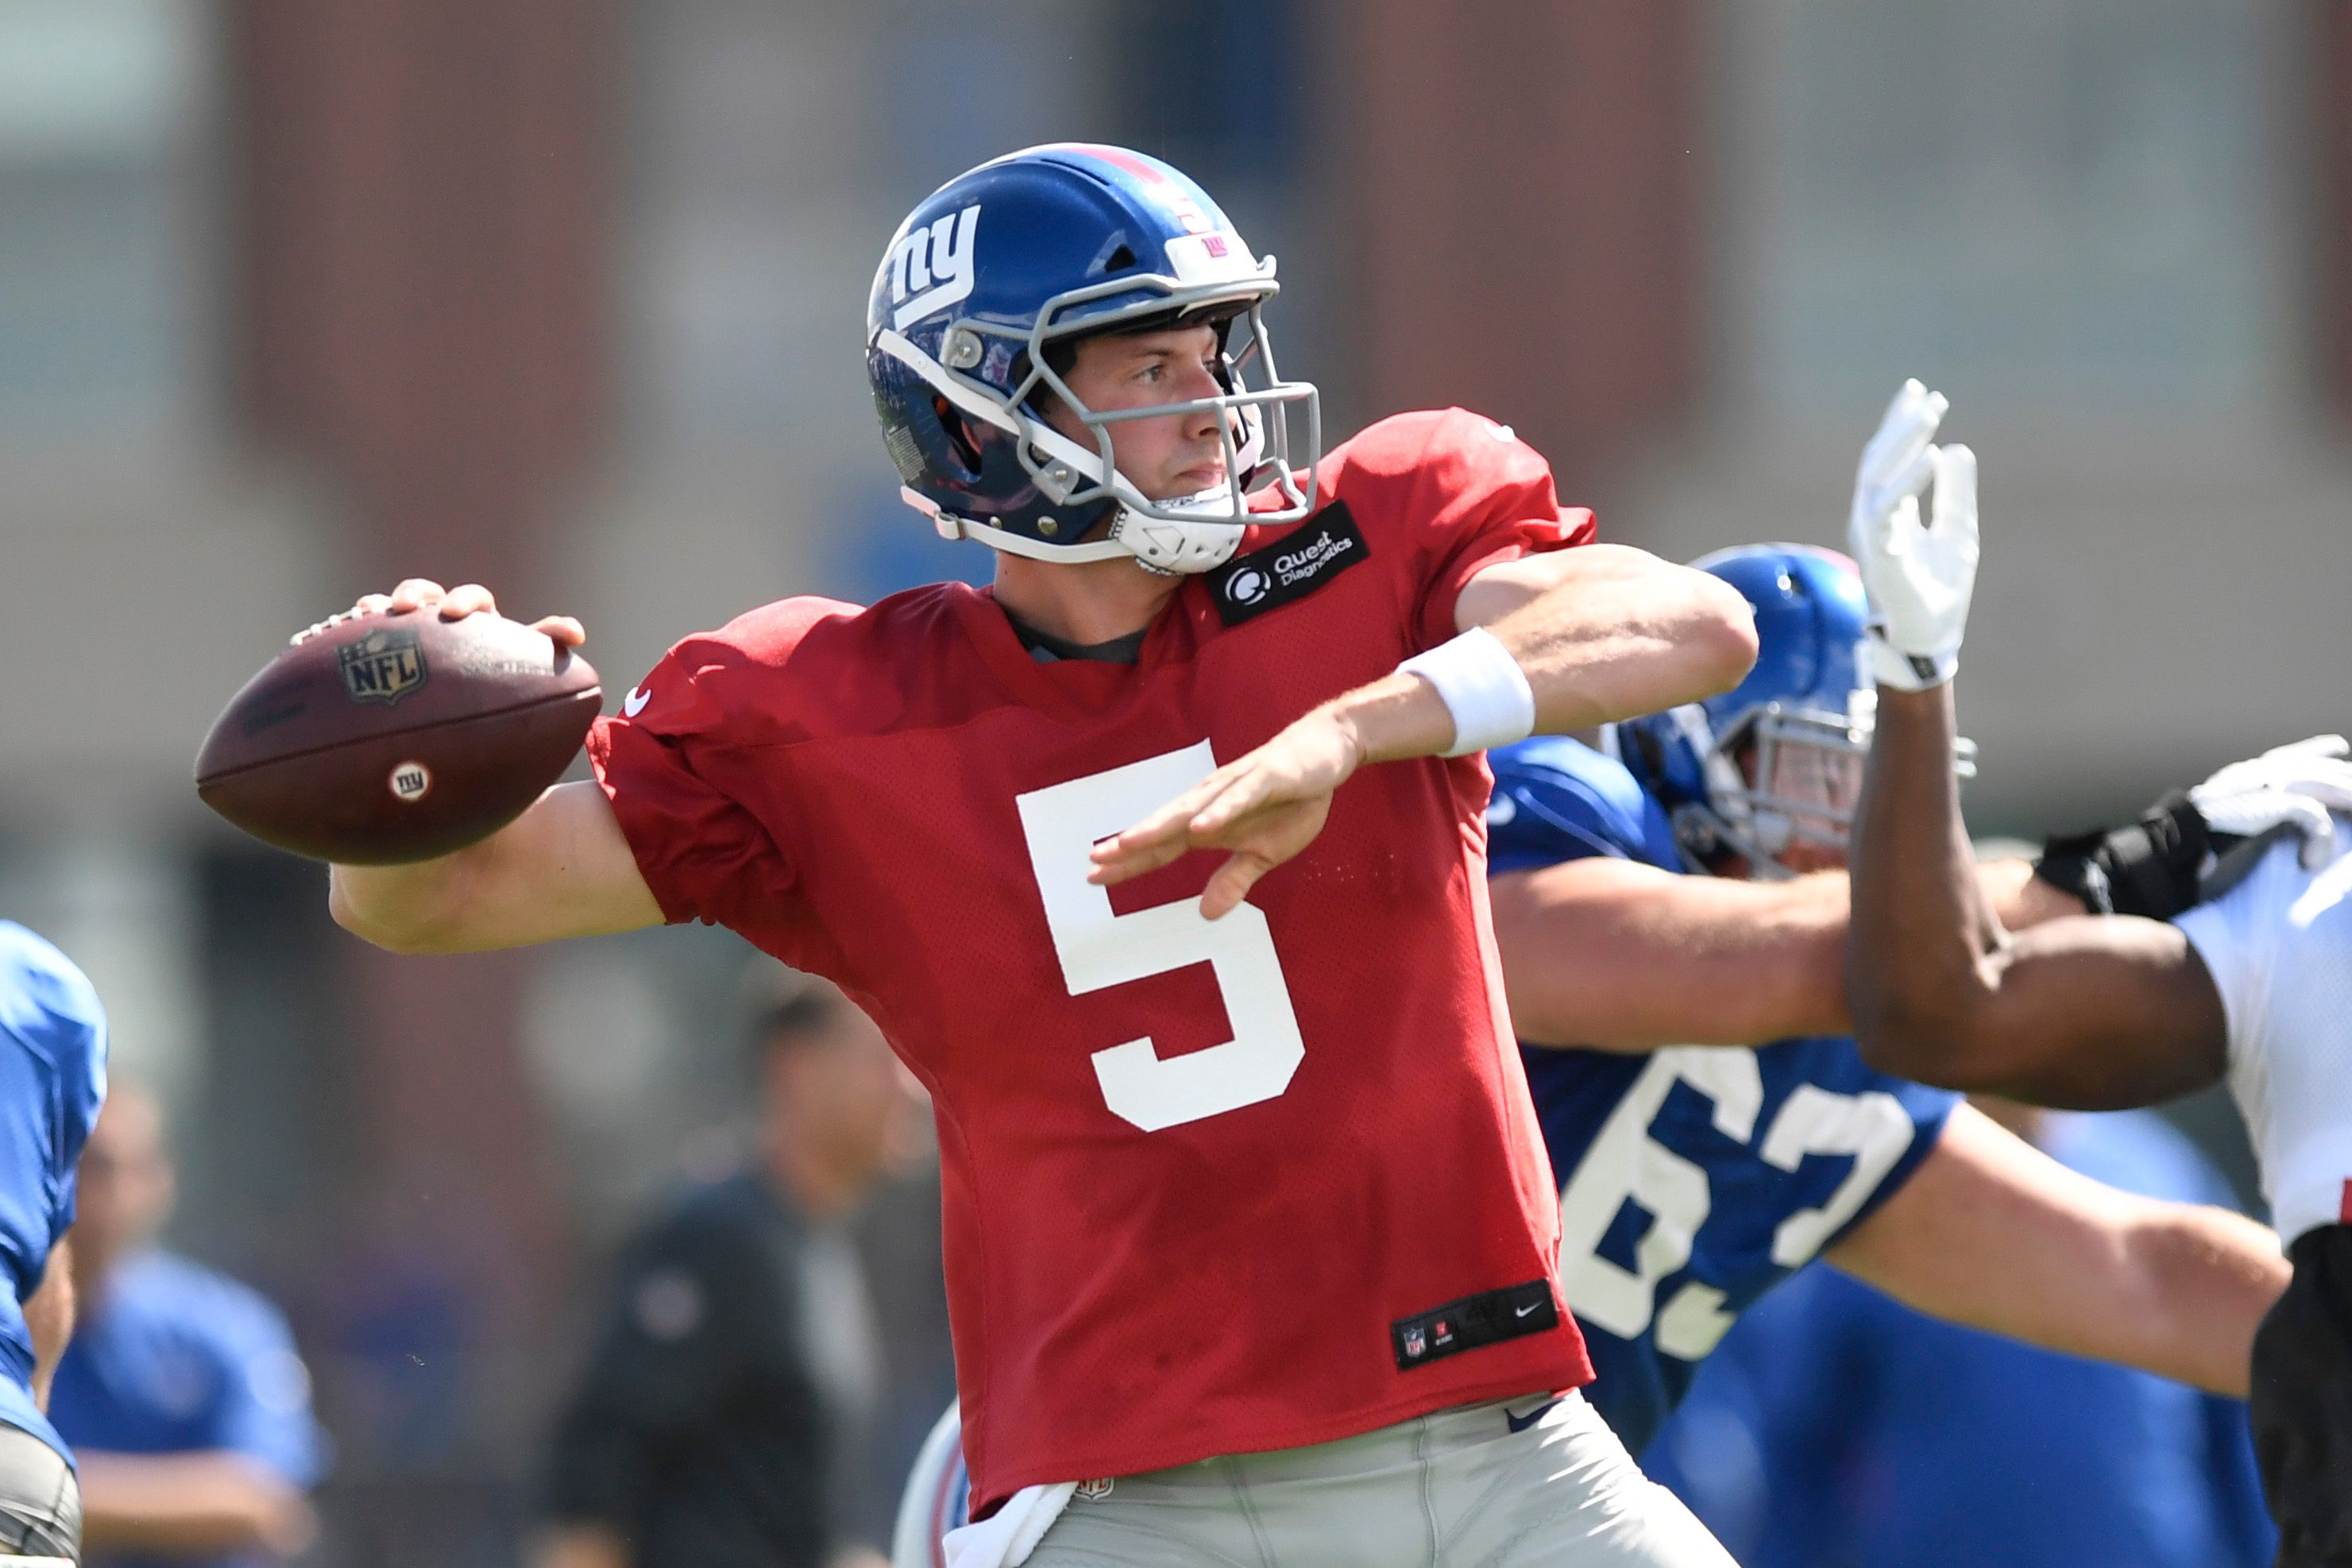 Jets sign former Giants QB Davis Webb to practice squad